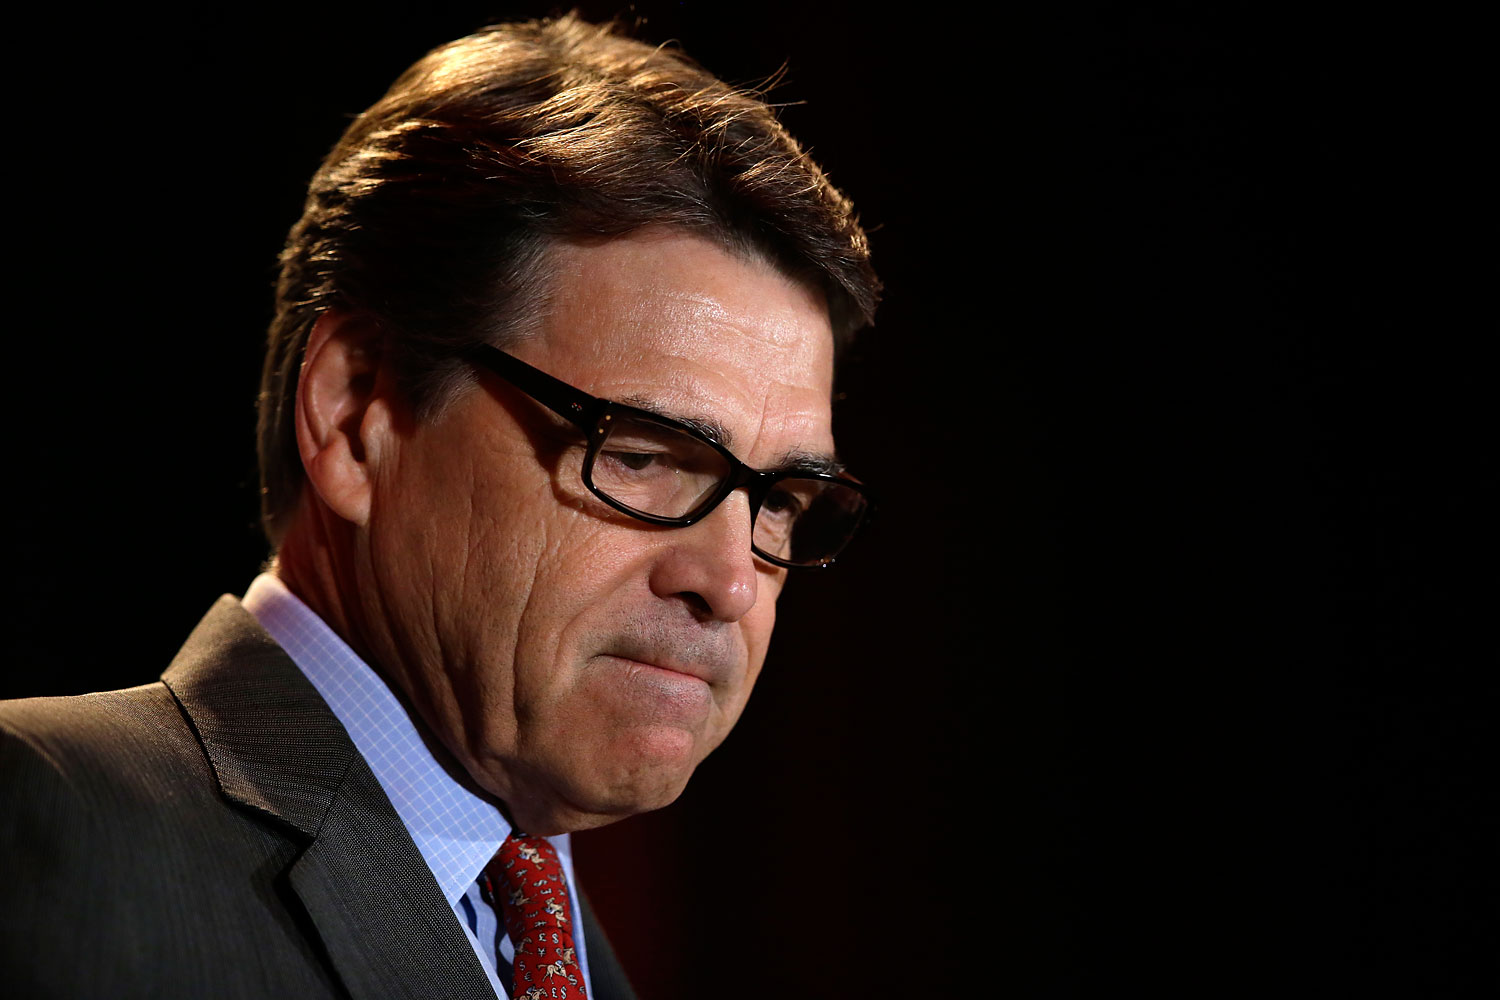 Governor Rick Perry pauses as he addresses attendees at the 2014 Red State Gathering, Aug. 8, 2014, in Fort Worth, Texas.